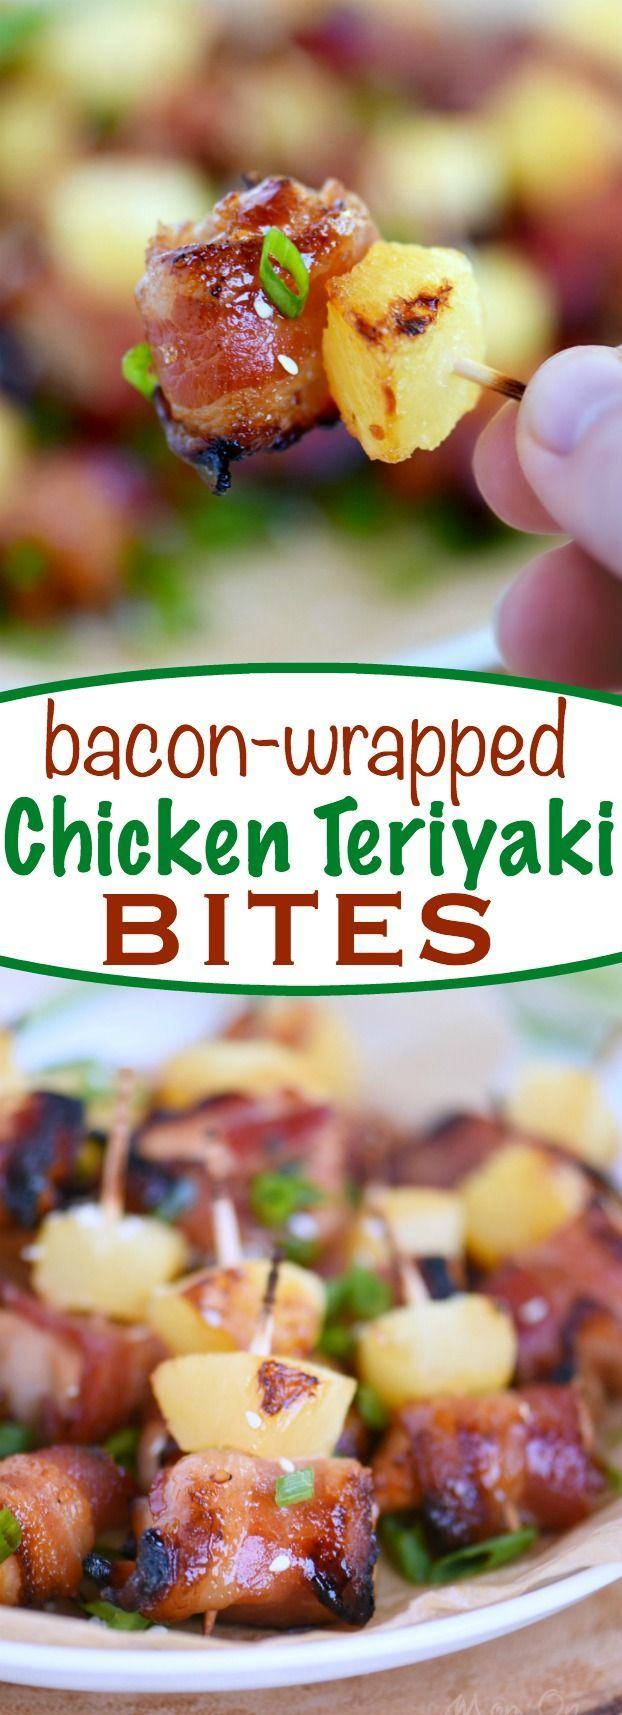 These Bacon Wrapped Chicken Teriyaki Bites are sure to be a huge hit on game day! Sweet and savory and packed full of flavor! Score!